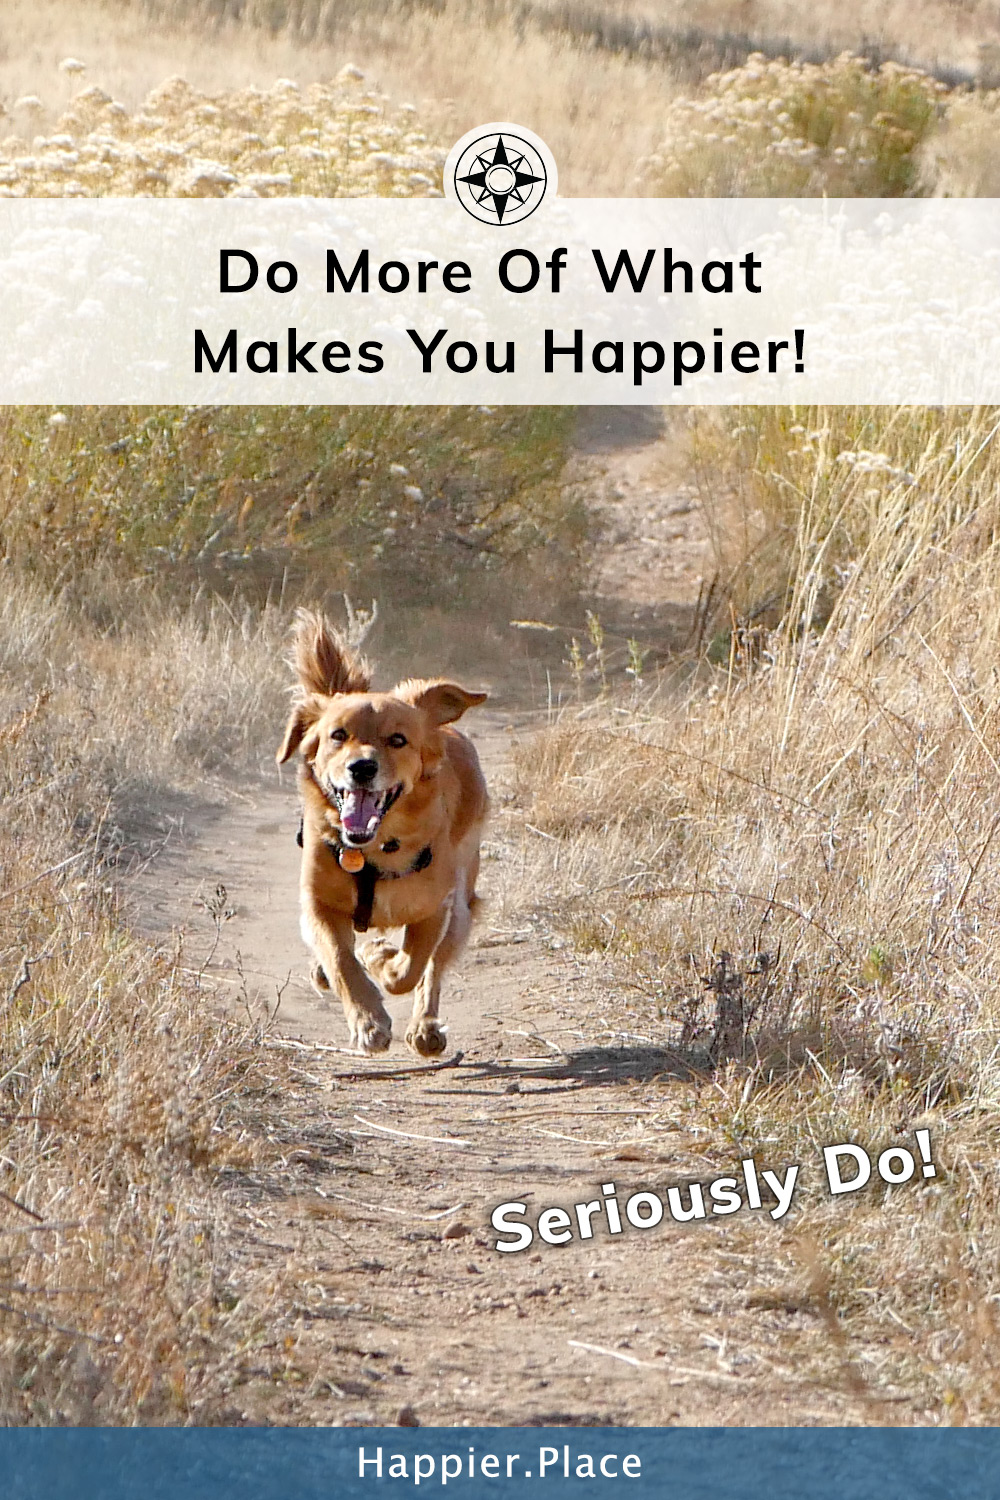 Do More of What Makes You Happier! (Seriously Do!)